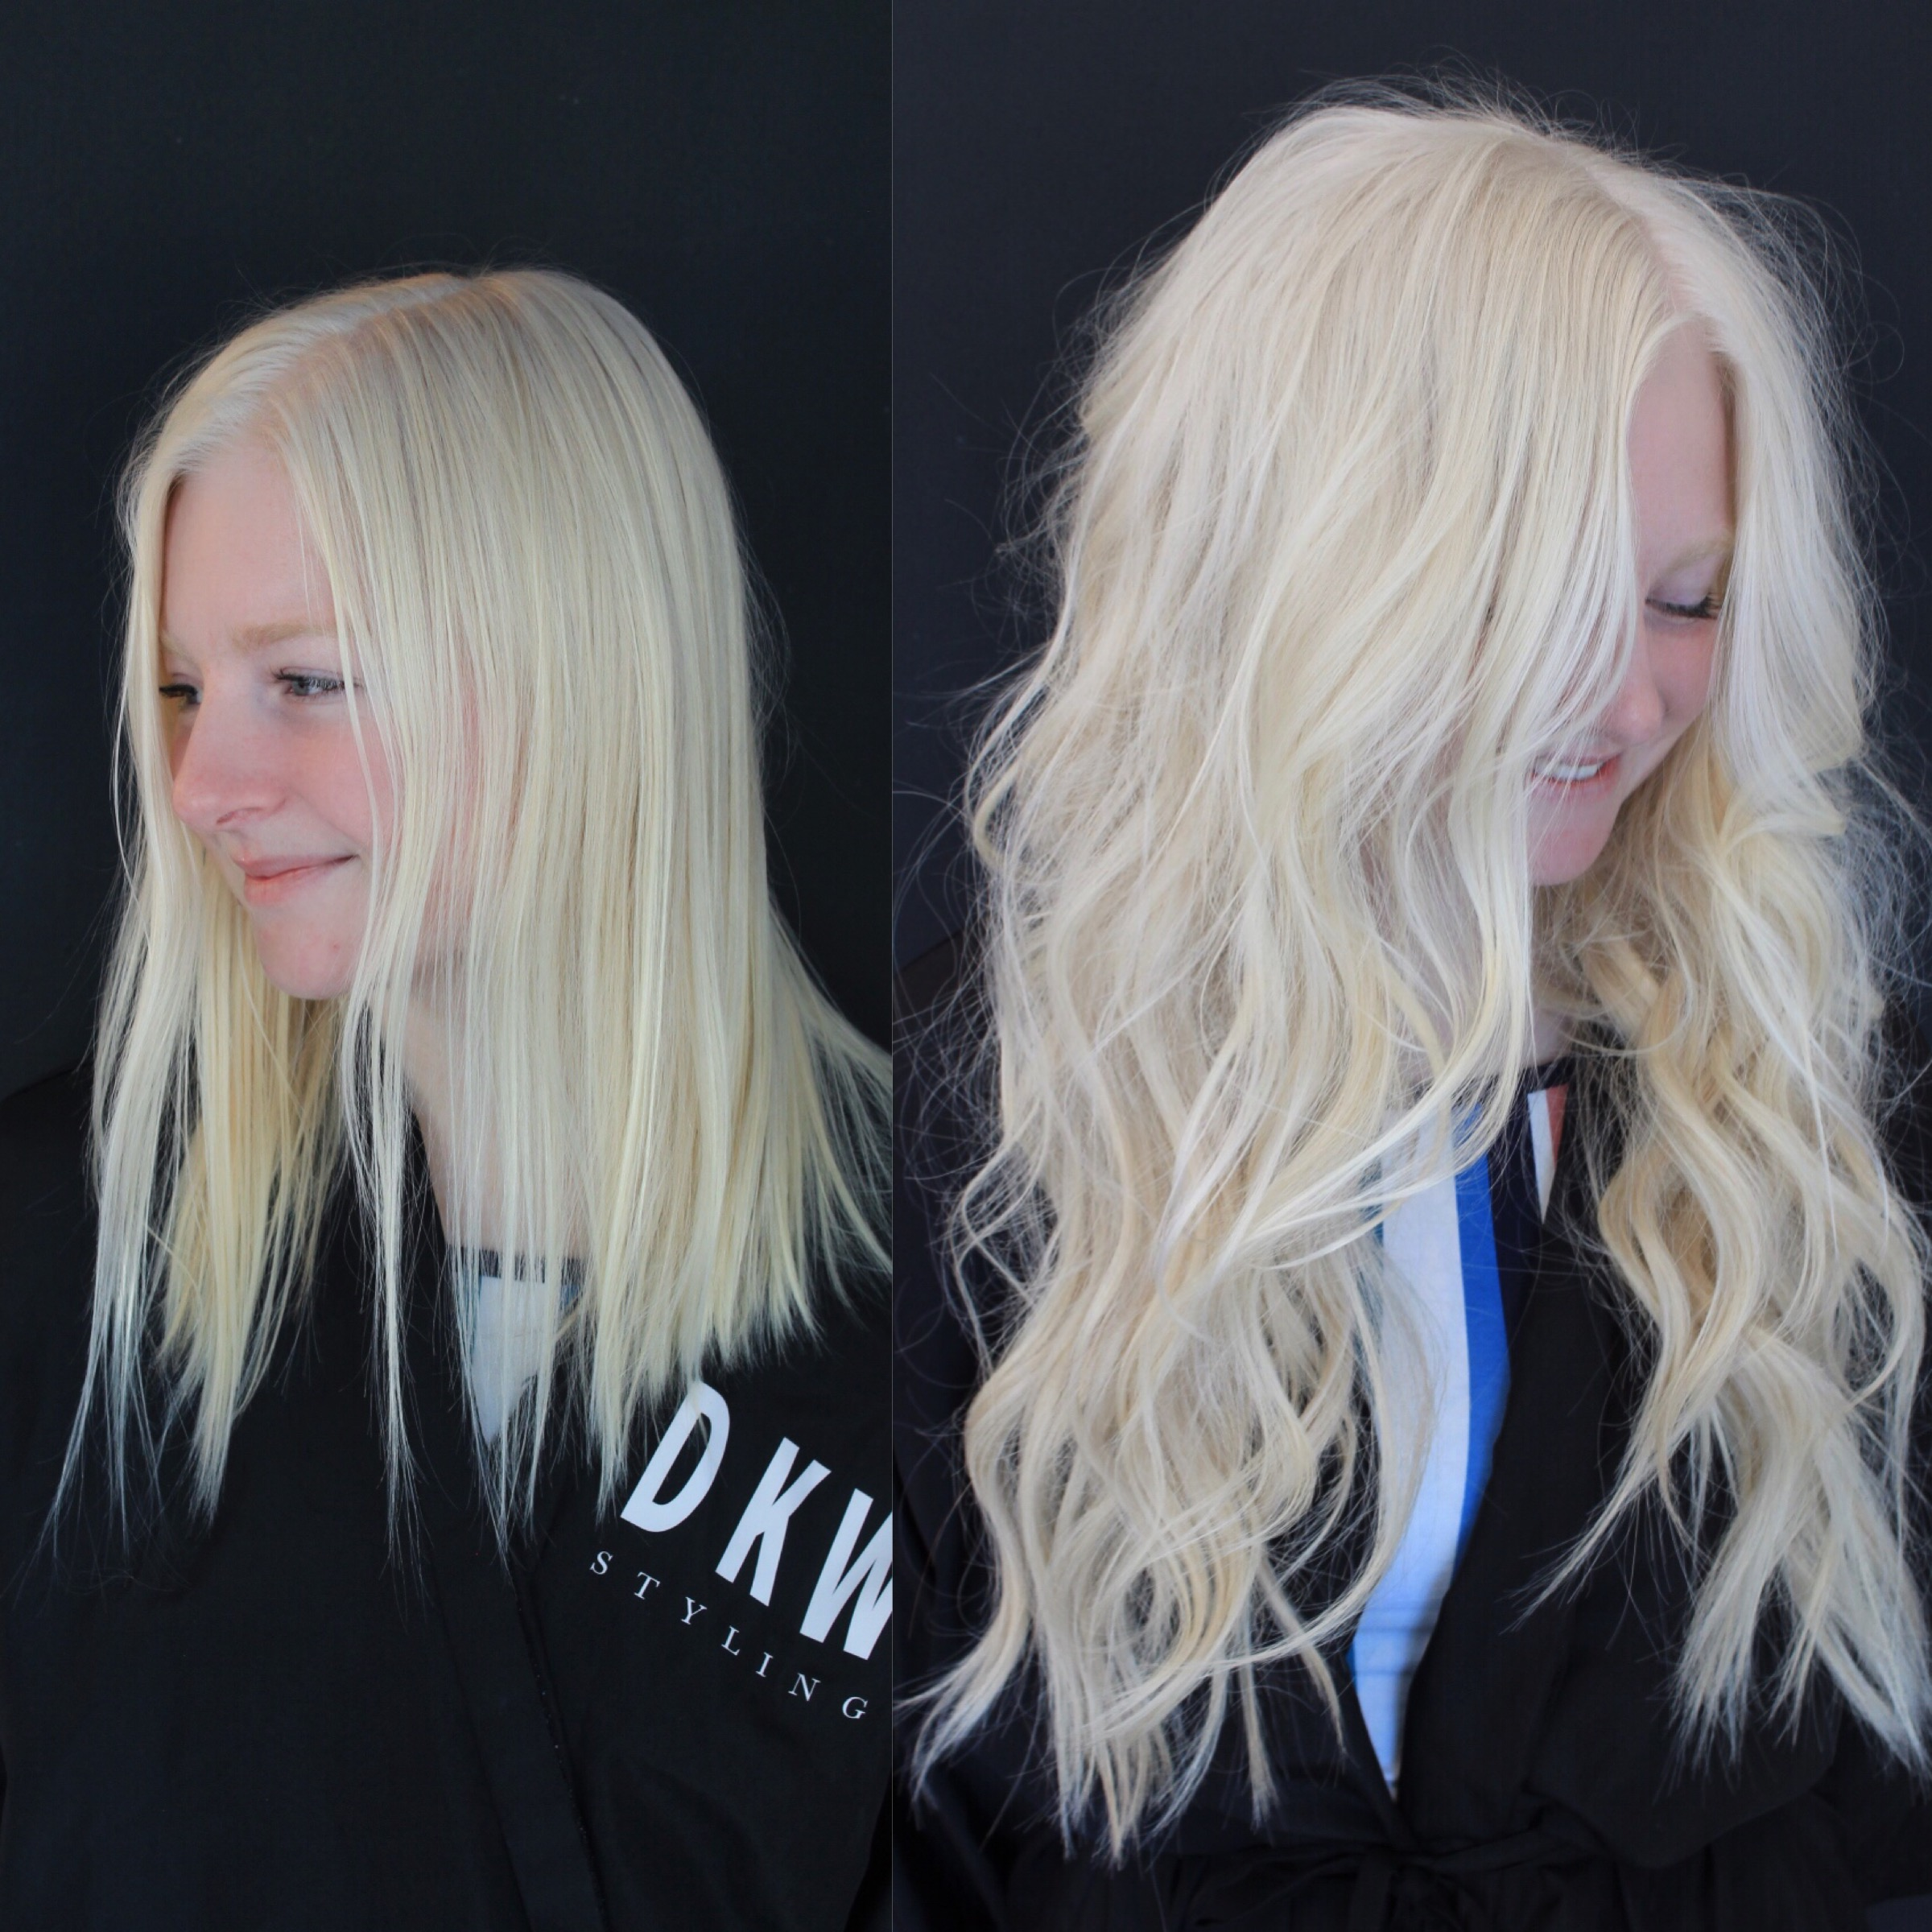 Hair Extensions Archives Dkw Styling